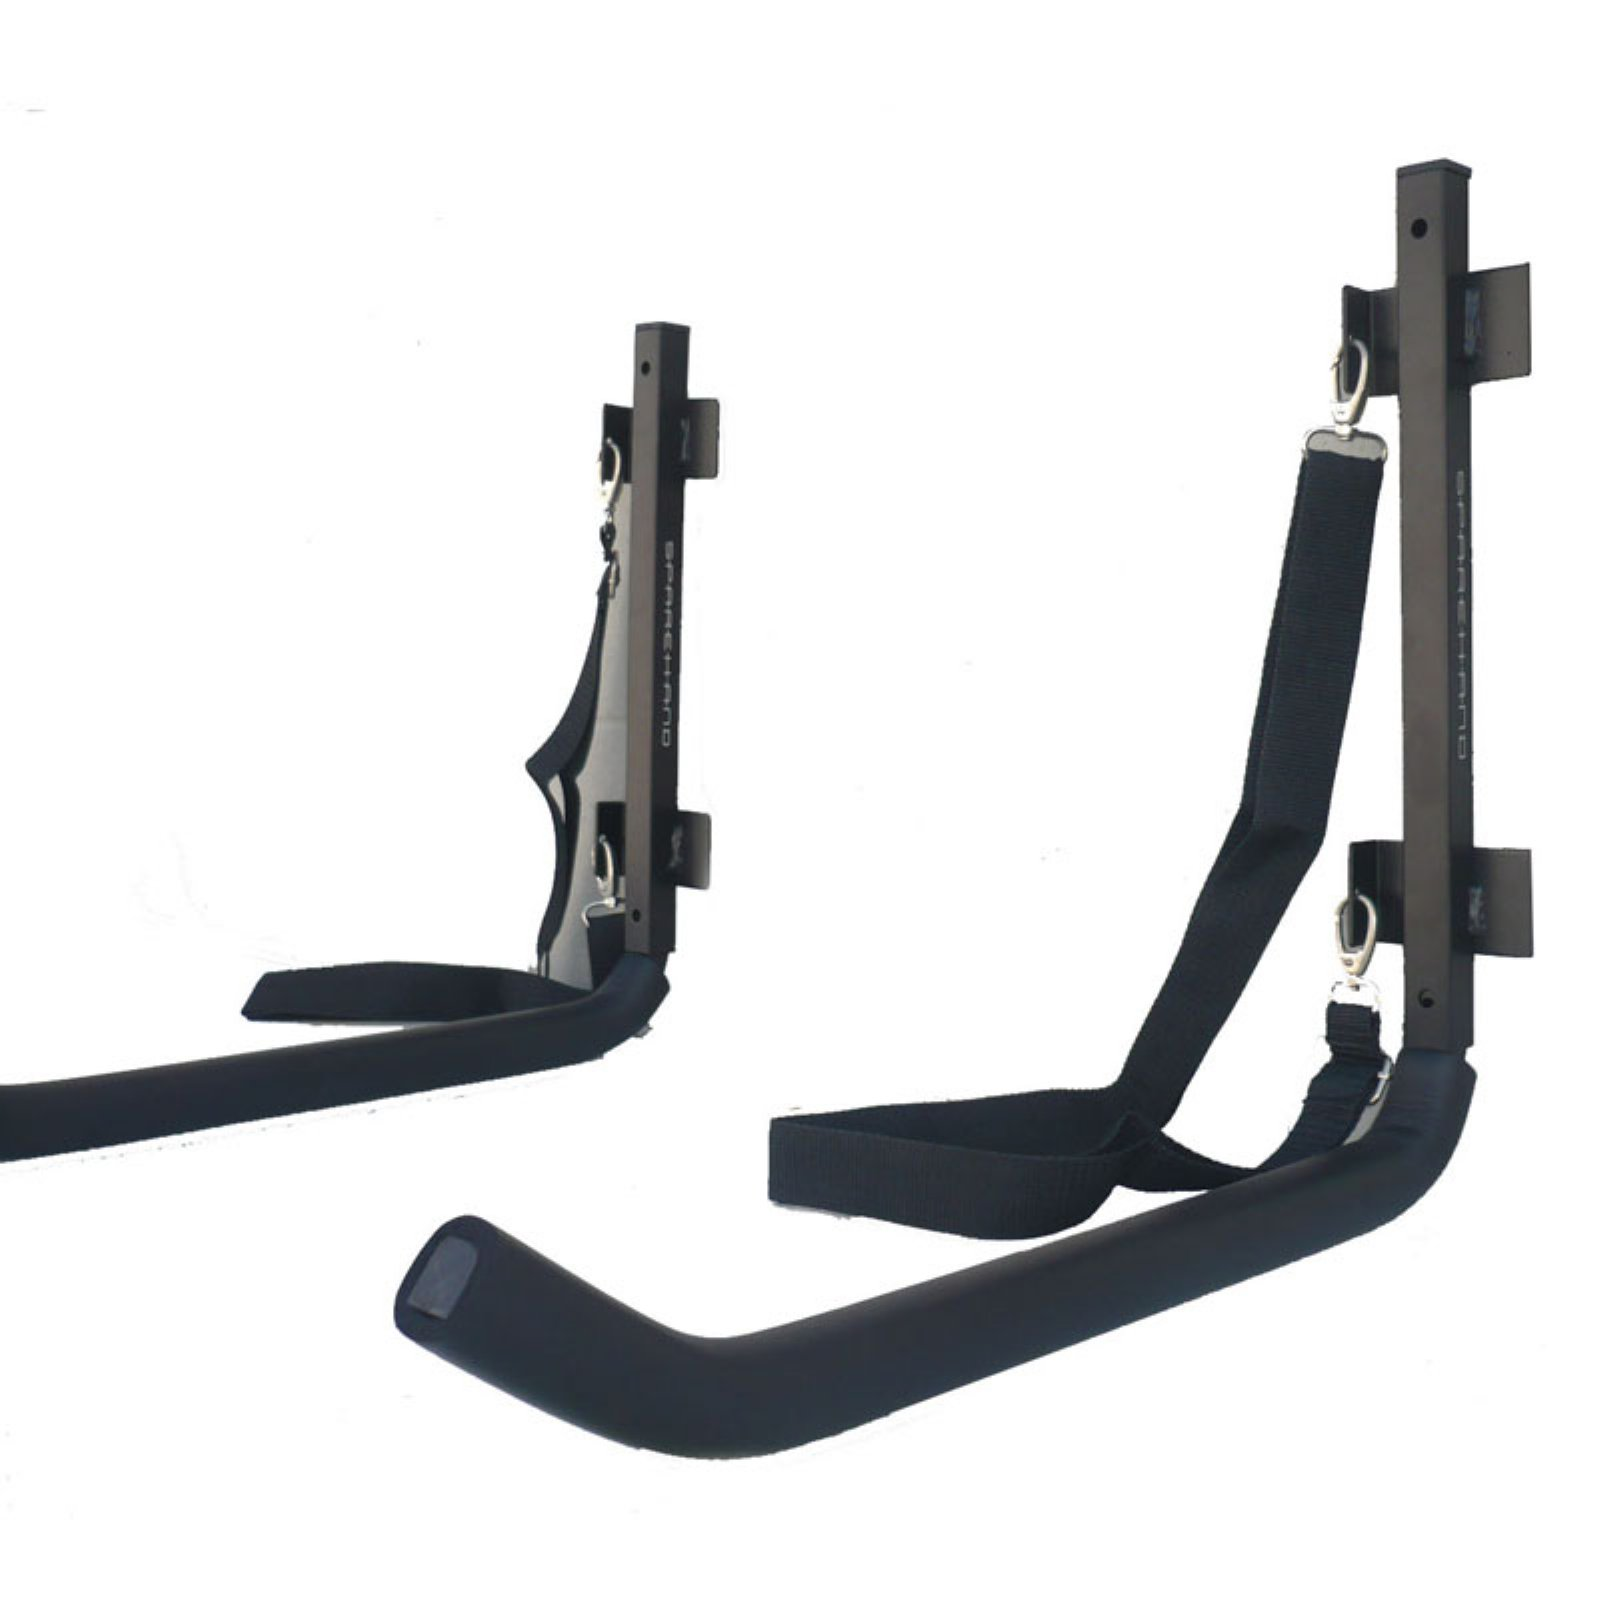 Sparehand Single Wall Mount Rack Storage with Safety Strap for 1 Kayak